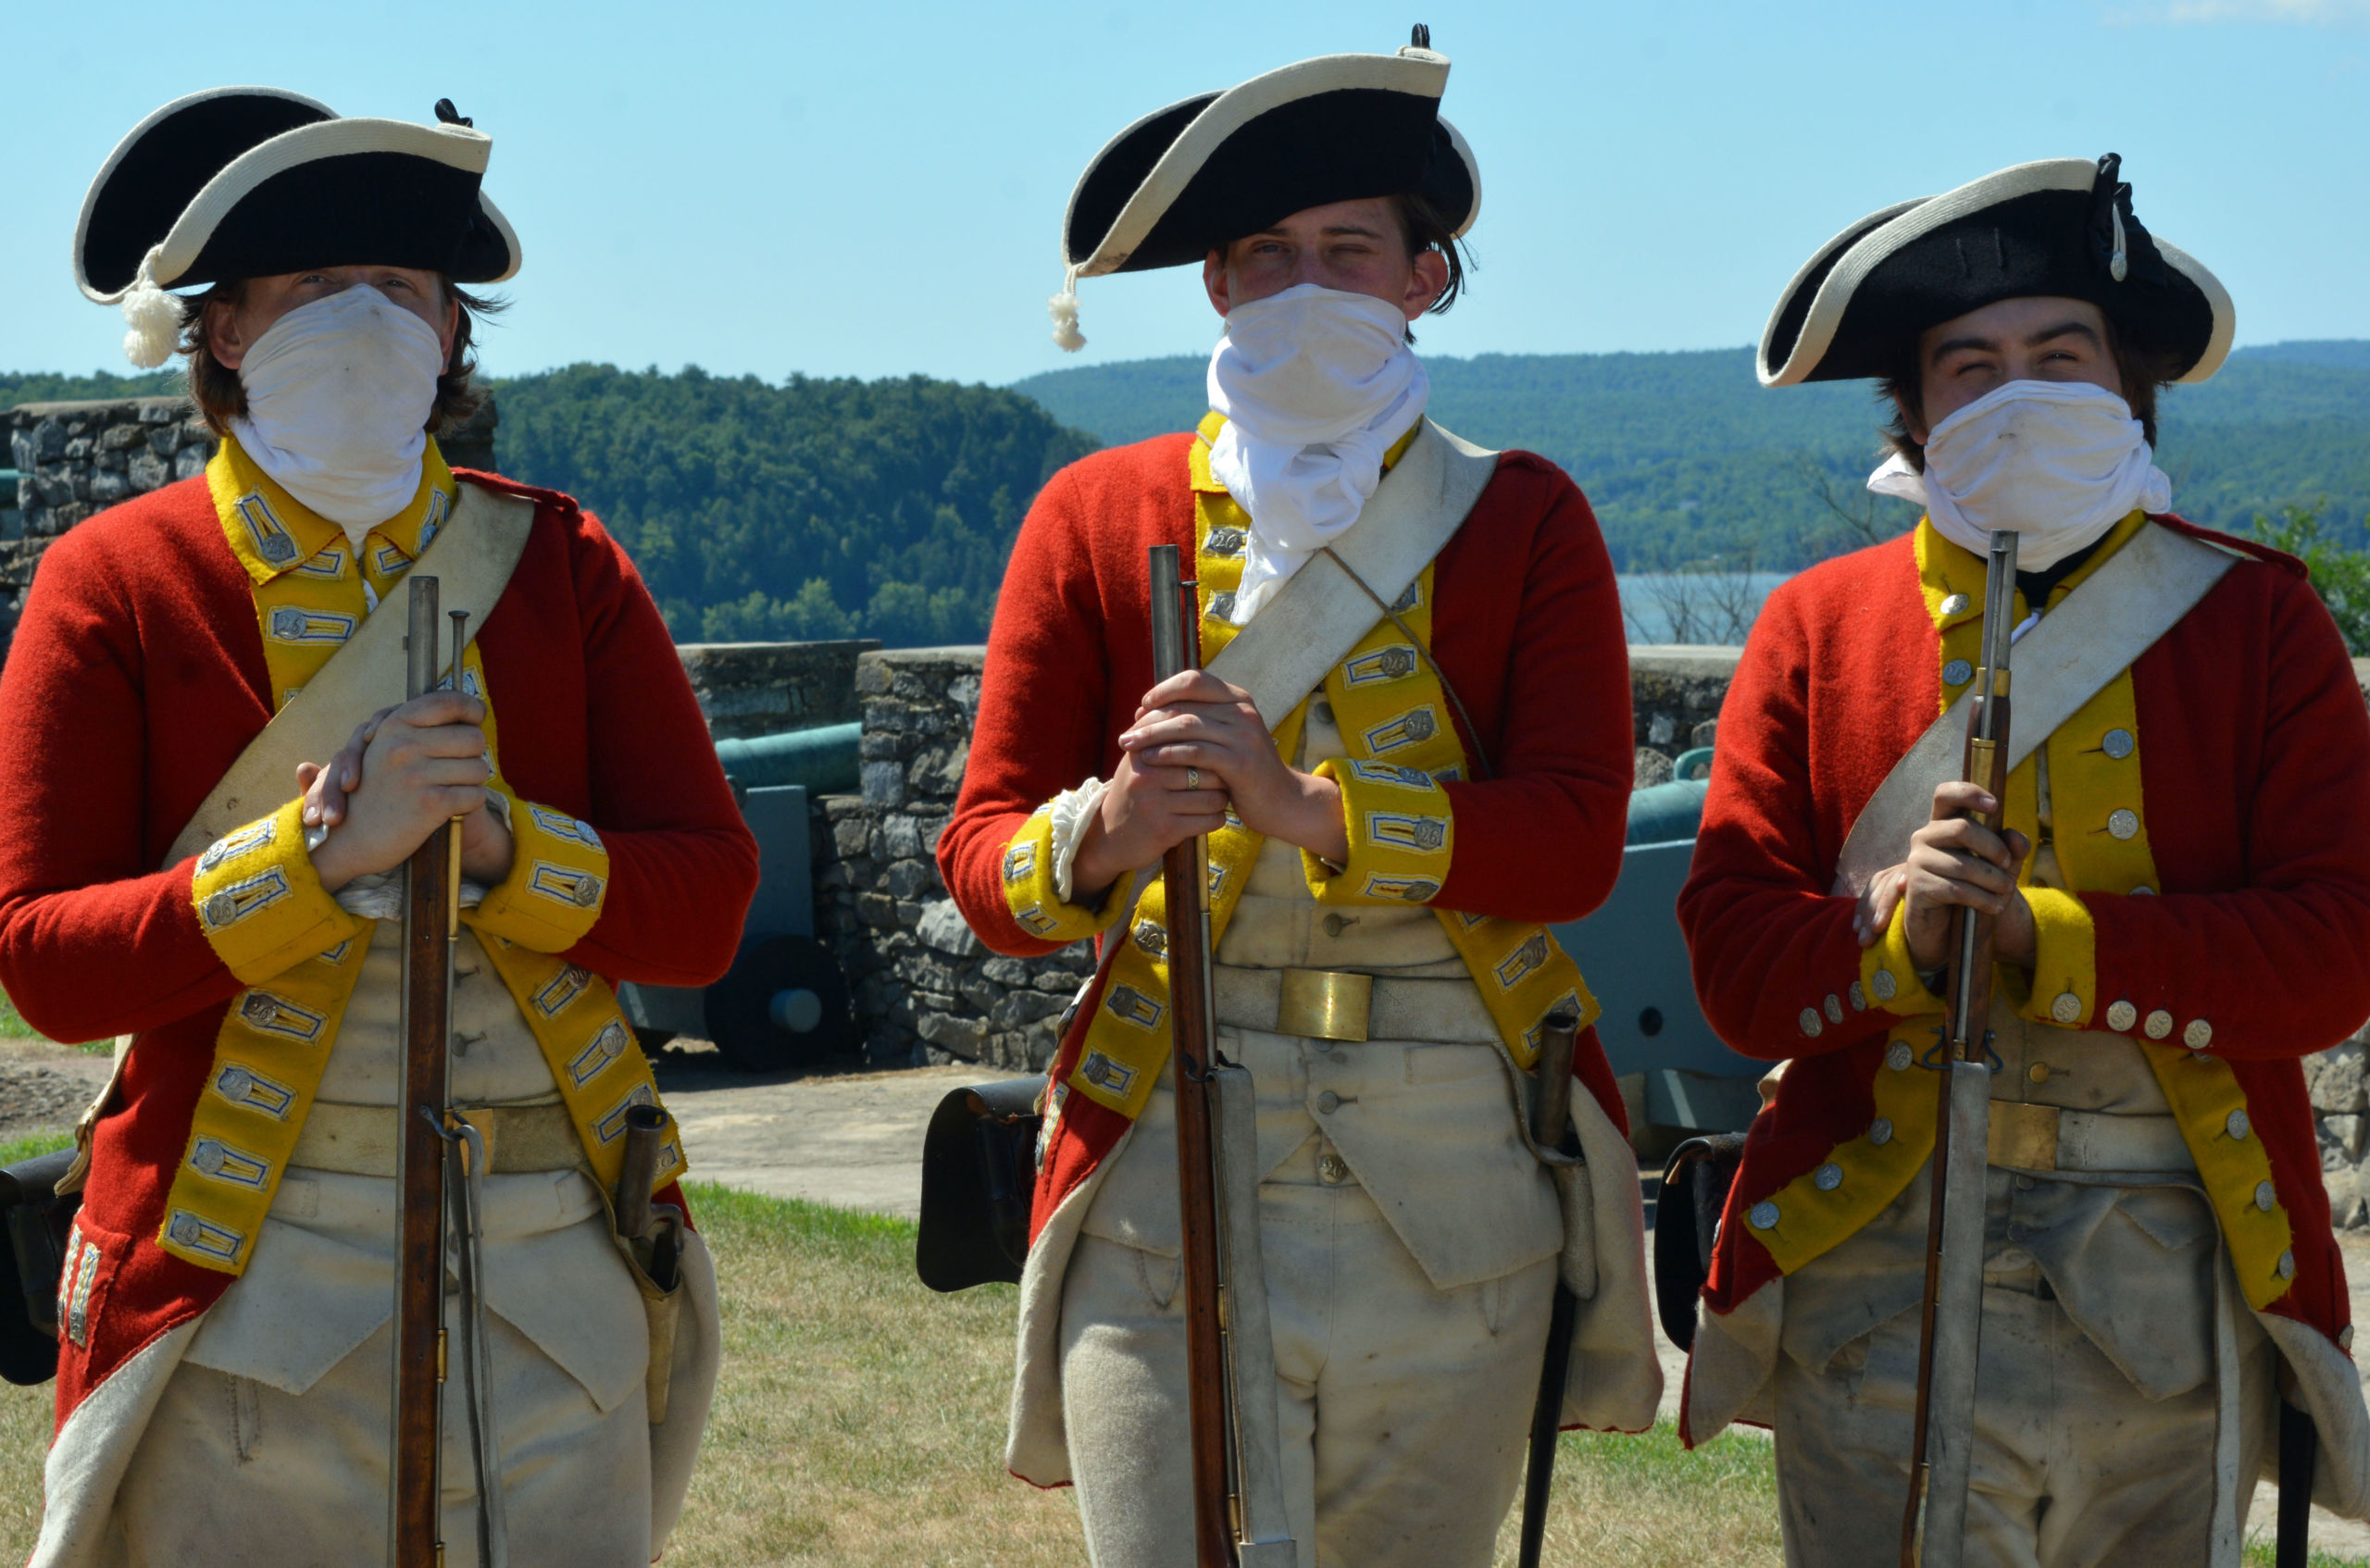 Fort Ticonderoga staff in 18th cent dress with muskets